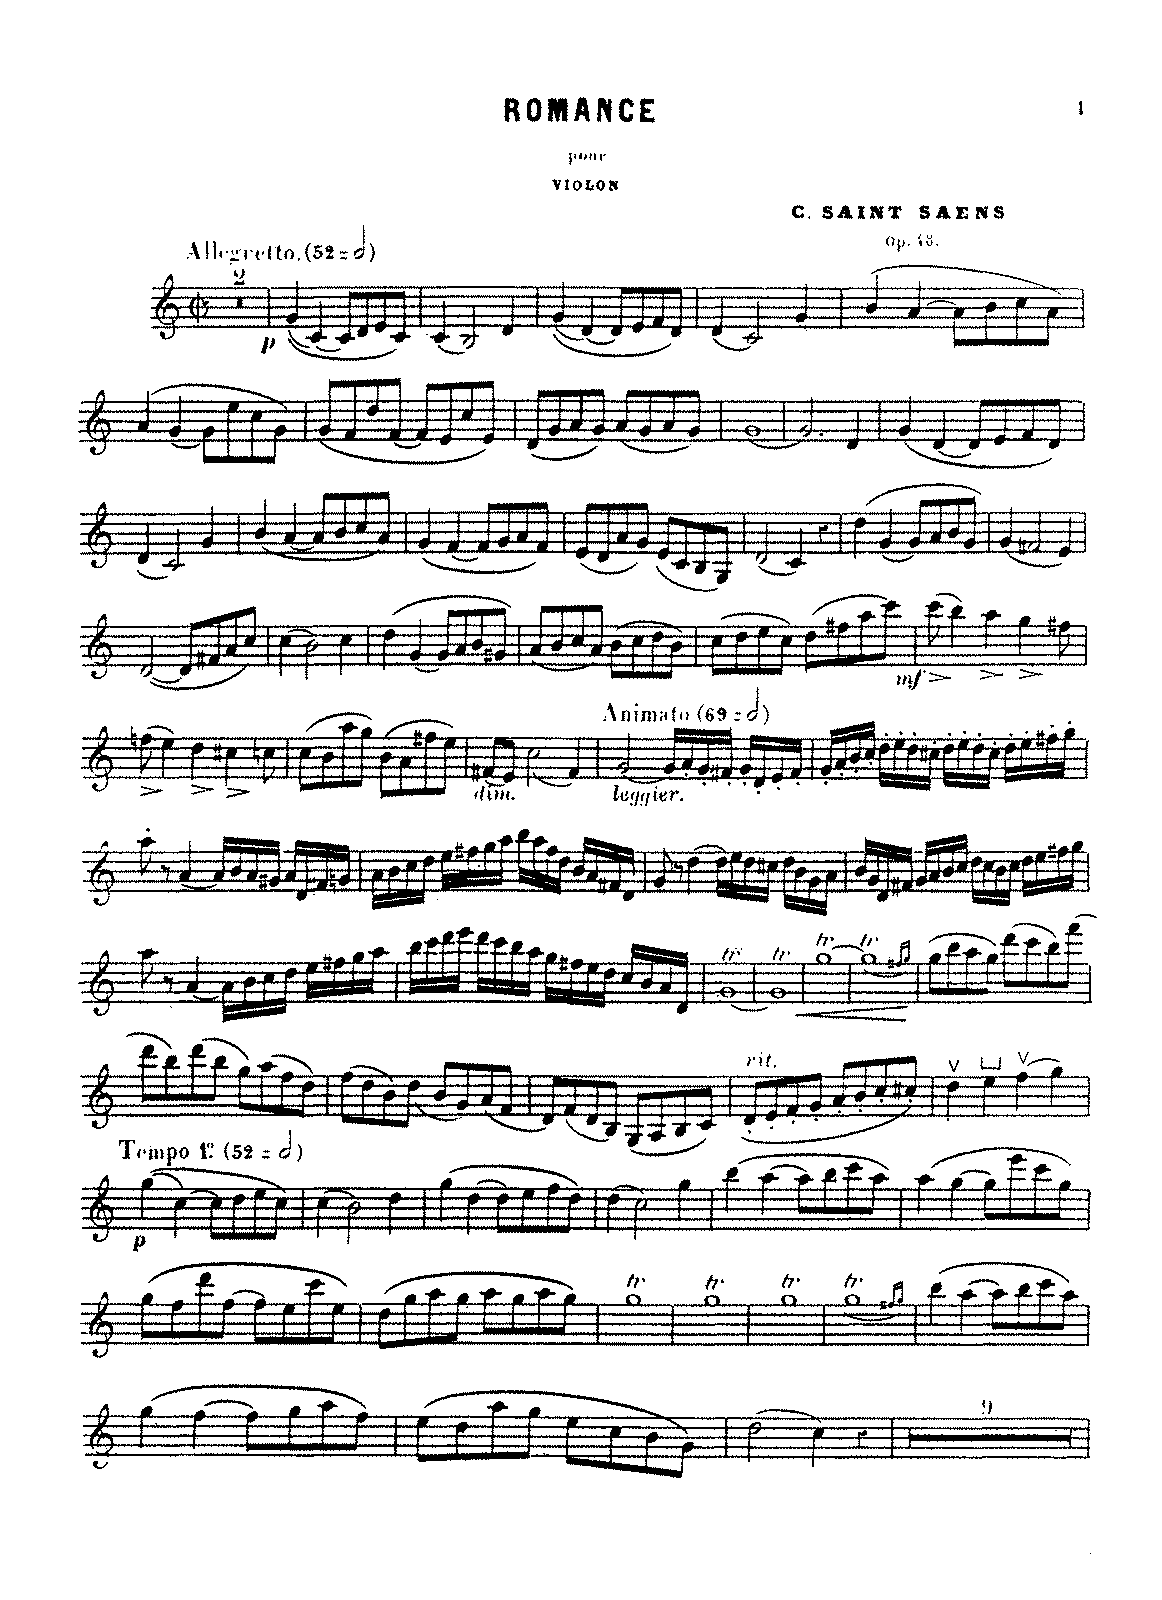 PMLP70673-Saint-Saëns - Romance, Op. 48 (violin and piano).pdf